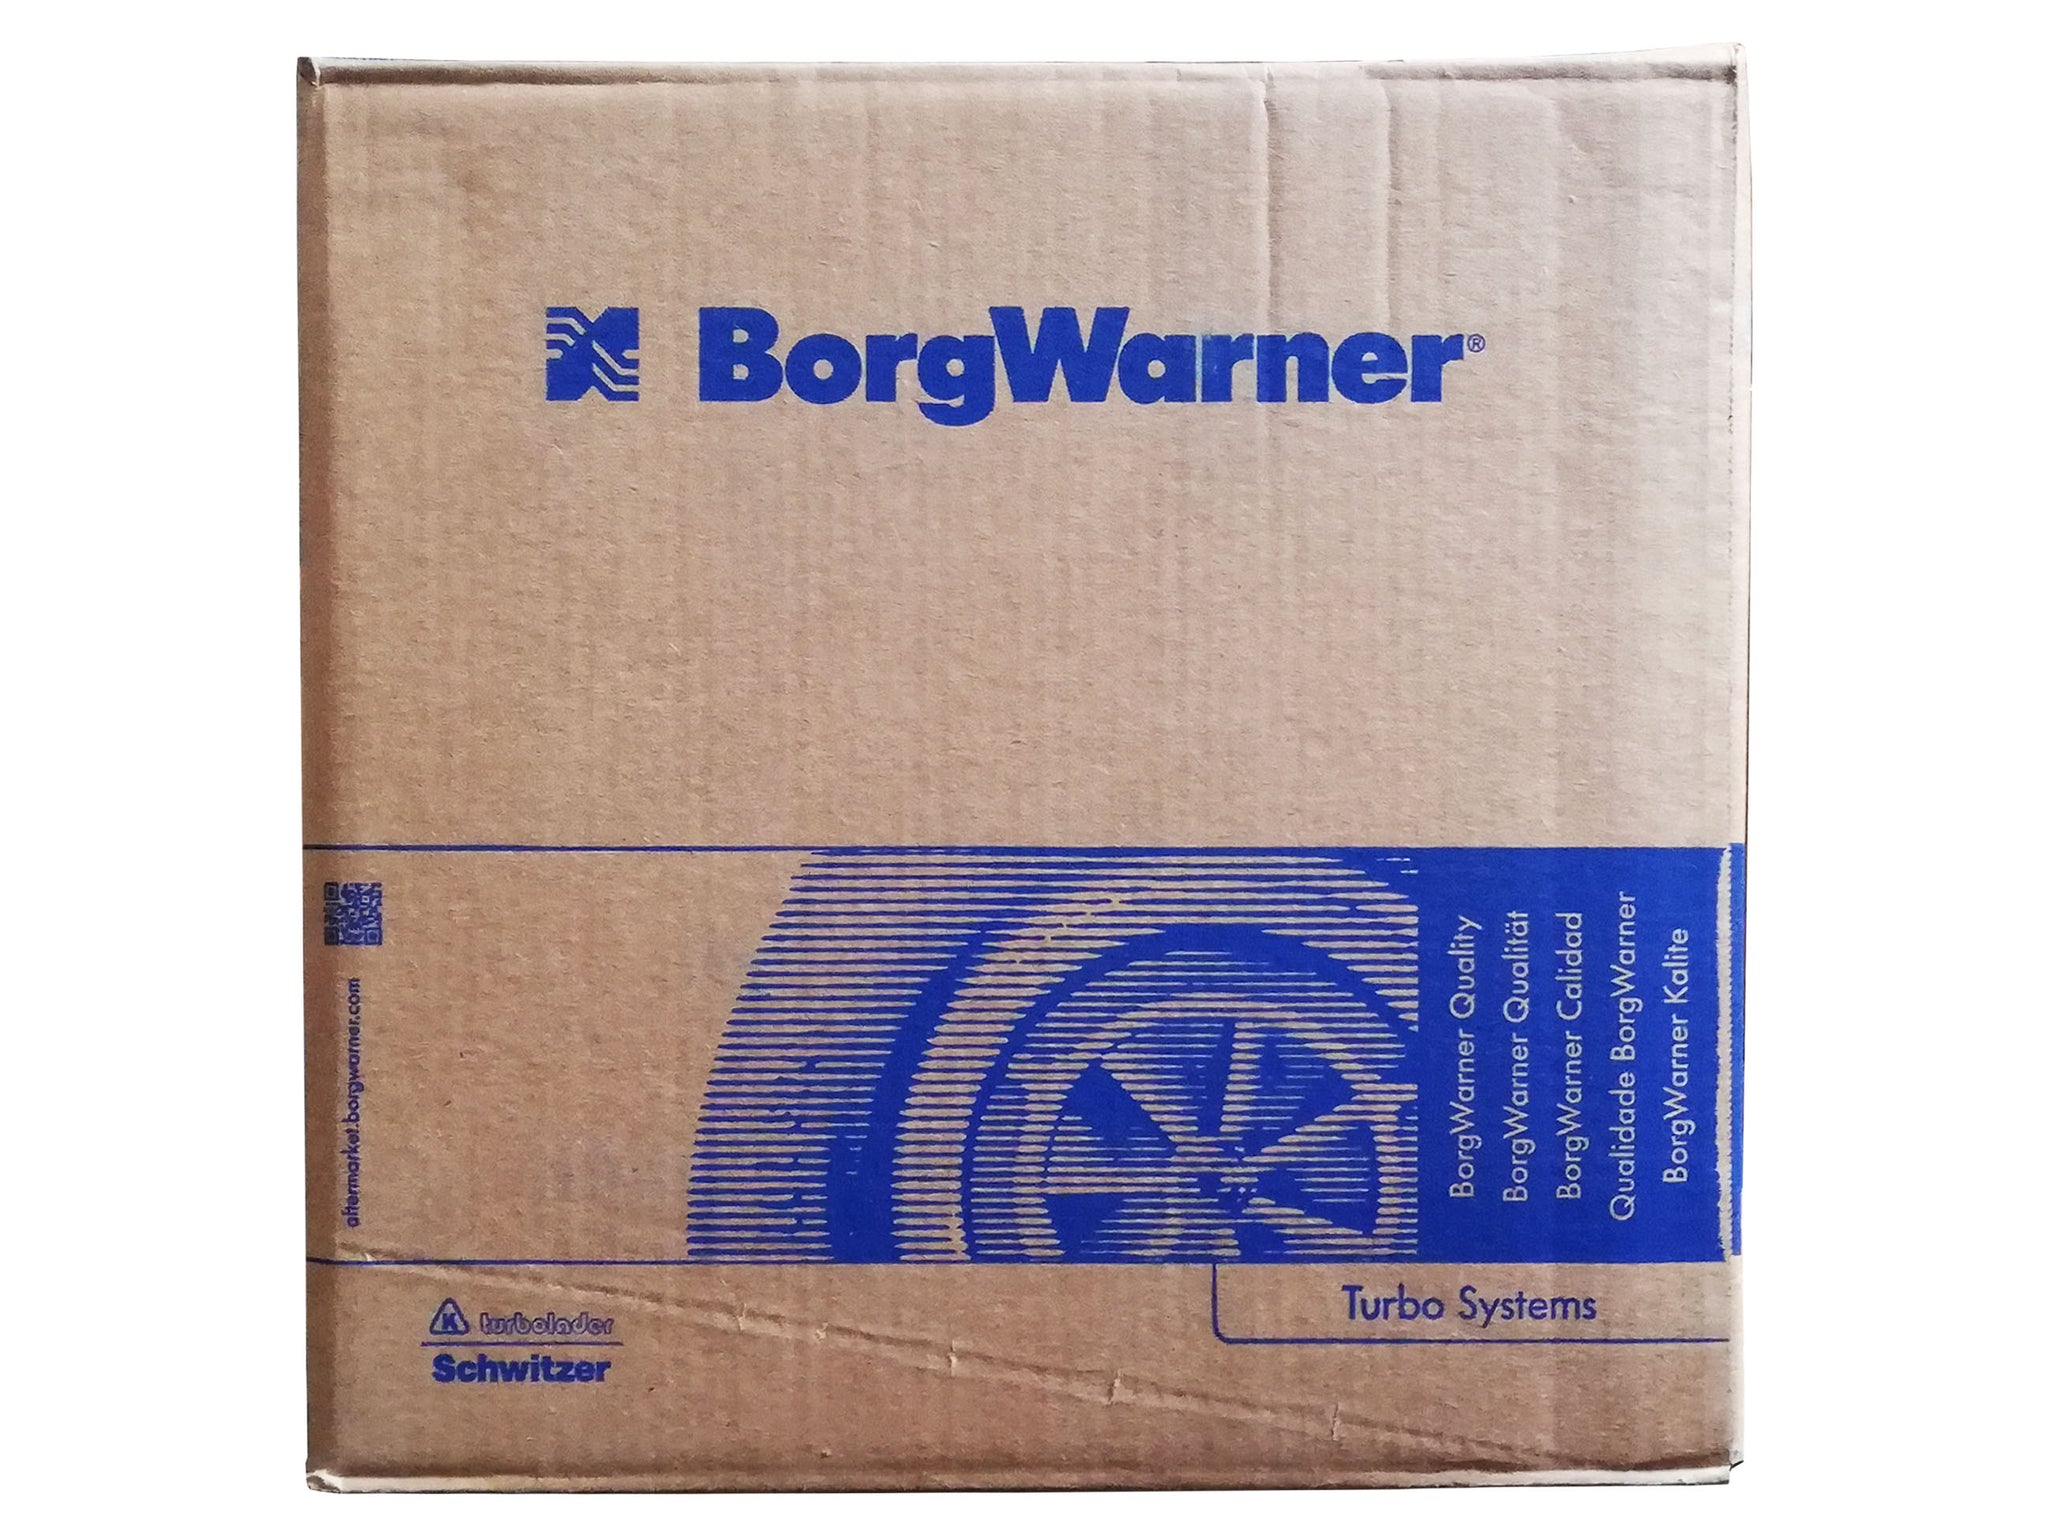 CAT Wheel Loader IT28F 928F 950F 3116 3126 179568 NEW OEM BorgWarner S2ESL Turbo